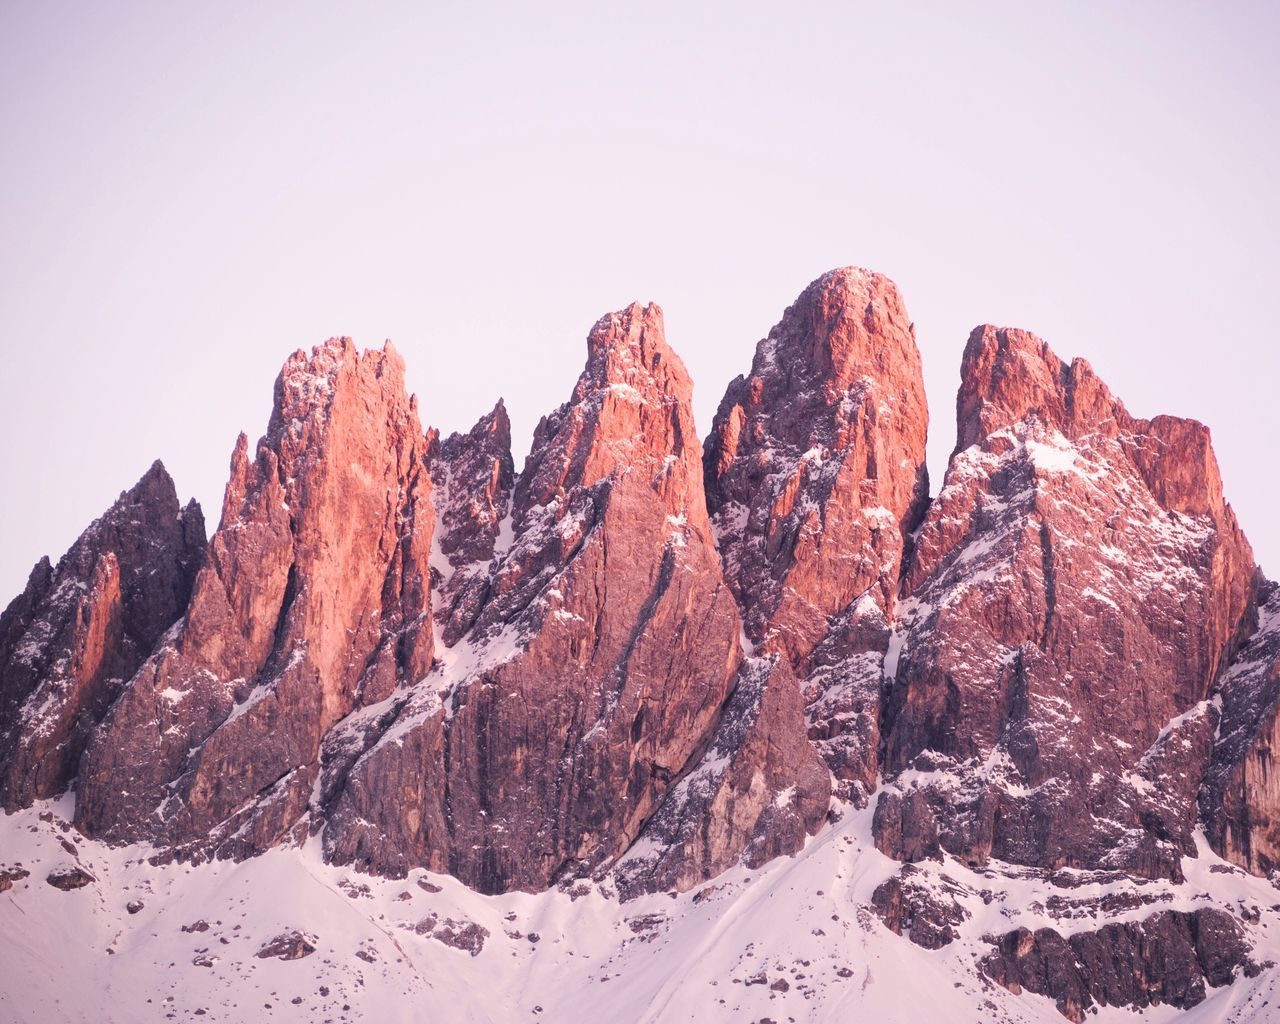 Mountain Nature Snow No People Rock - Object Tranquility Mountain Range Beauty In Nature Cold Temperature Outdoors Clear Sky Winter Landscape Scenics Day Sky The Great Outdoors - 2017 EyeEm Awards at Dolomites, Italy BYOPaper!